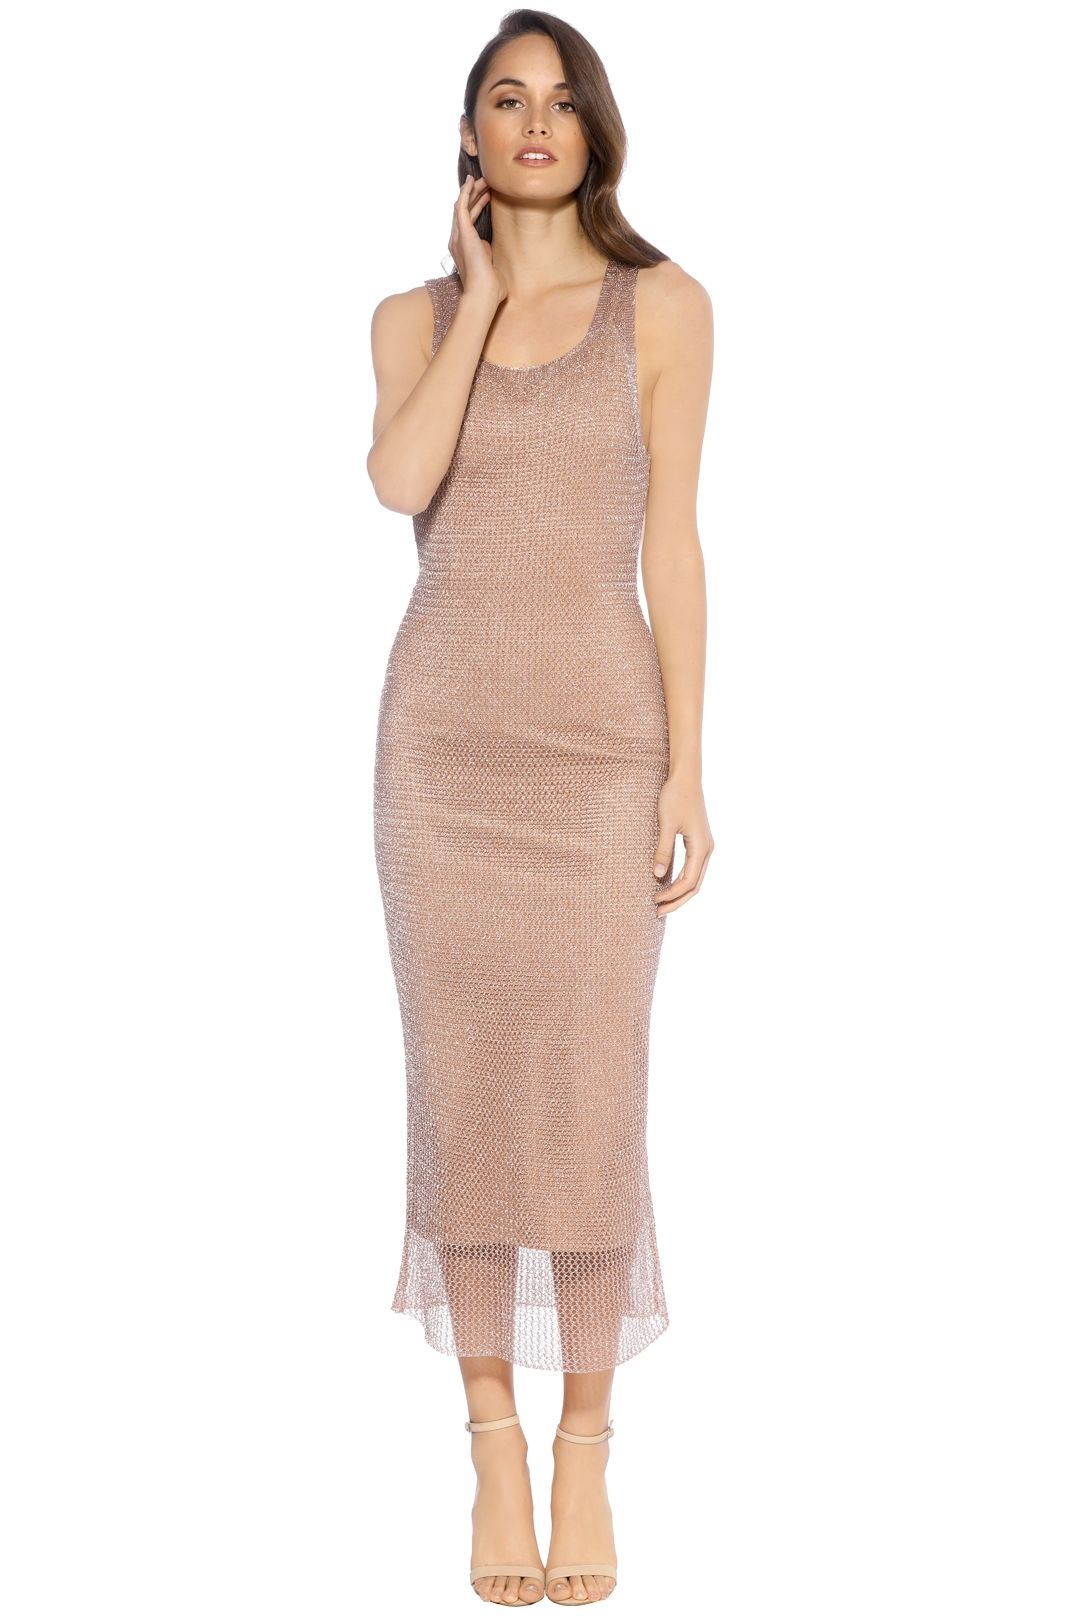 We Are Kindred - Steel Magnolia Singlet Dress - Rose Gold - Front